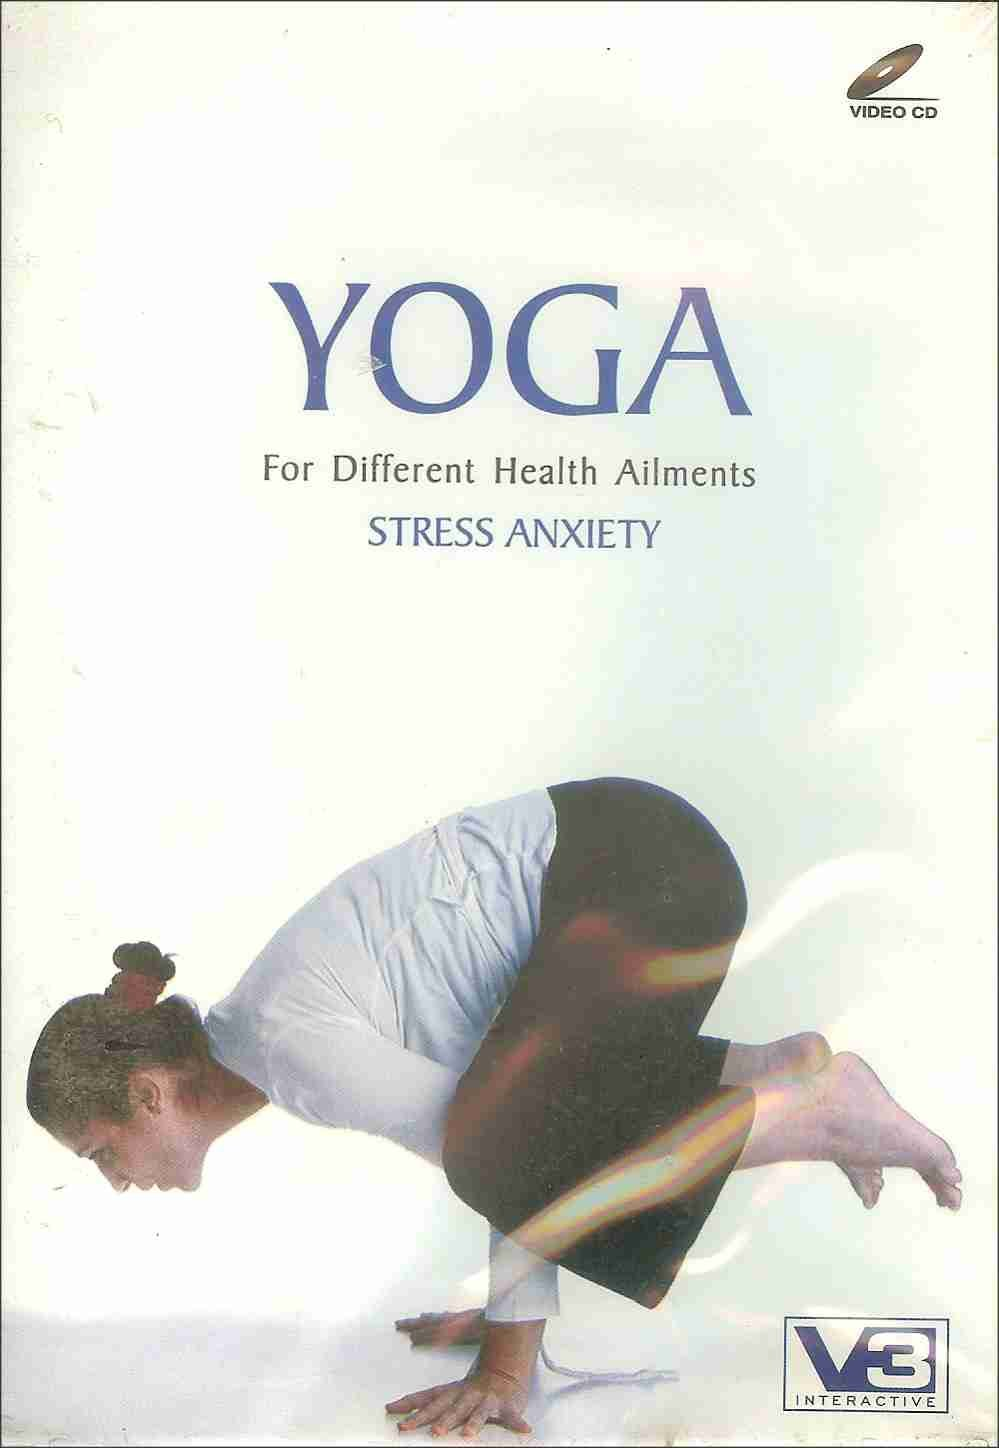 Amazon.com: Yoga For Stress Anxiety (Video CD): Movies & TV